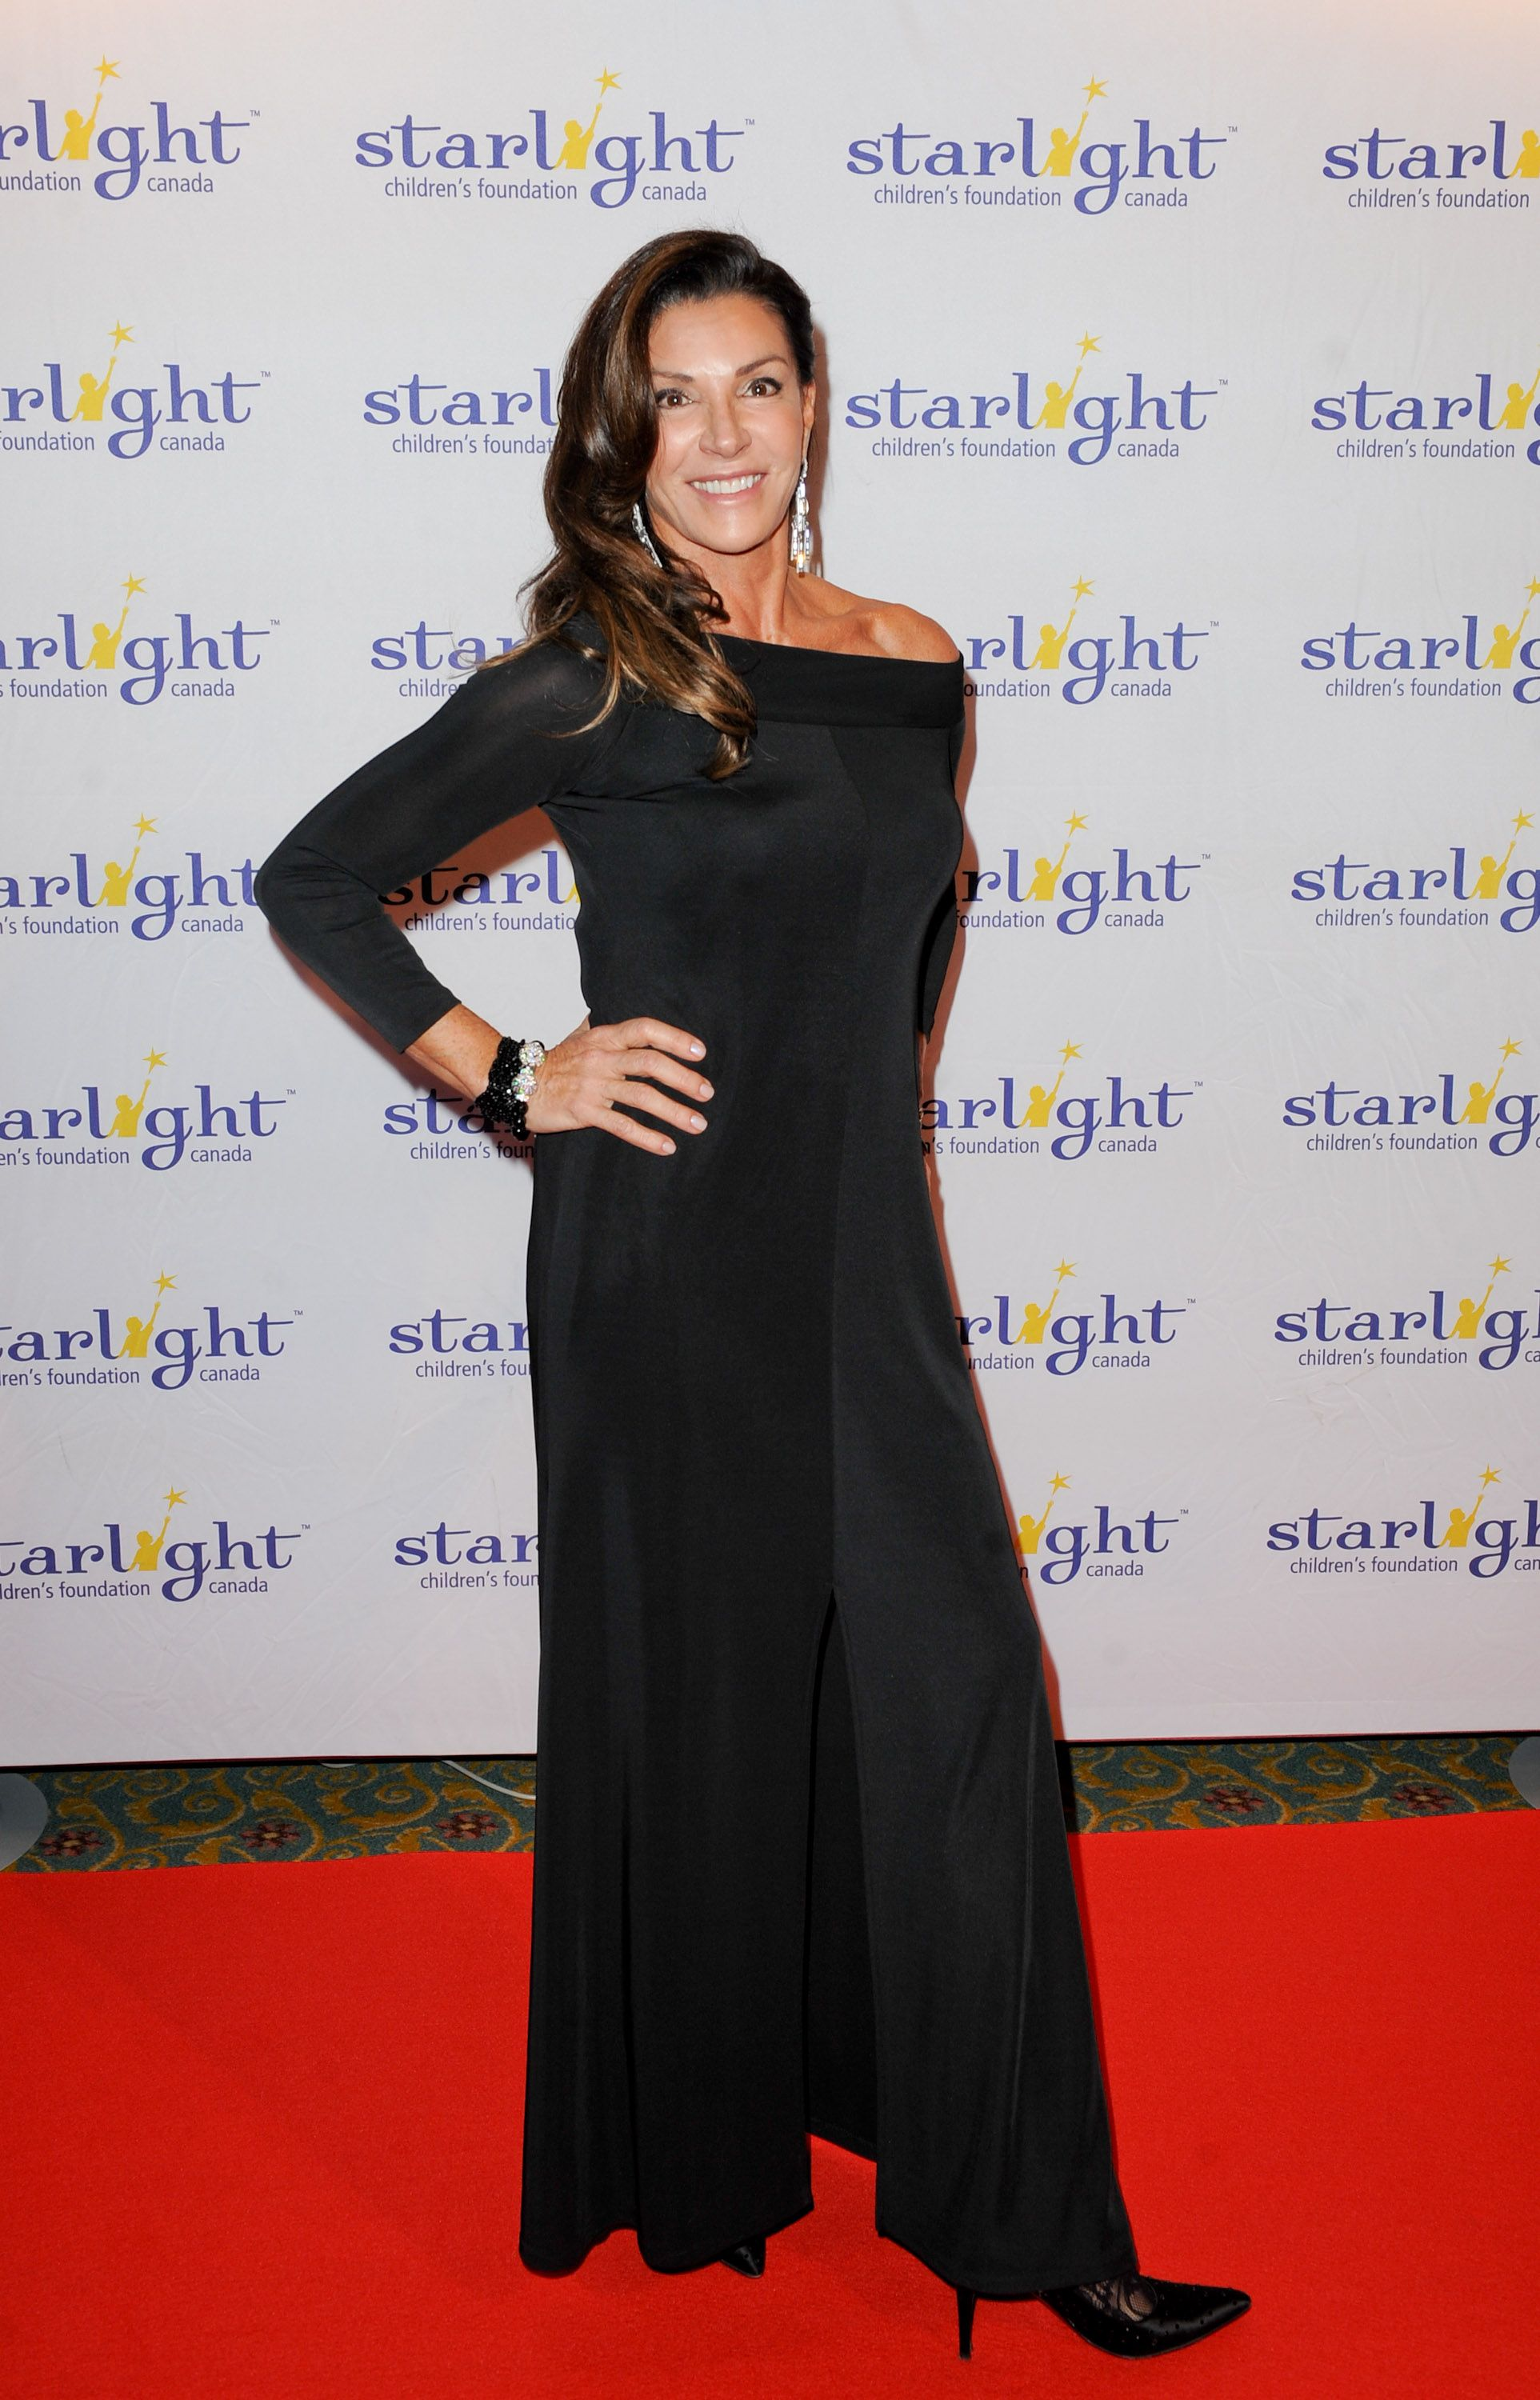 Hilary Farr at the Starlight event